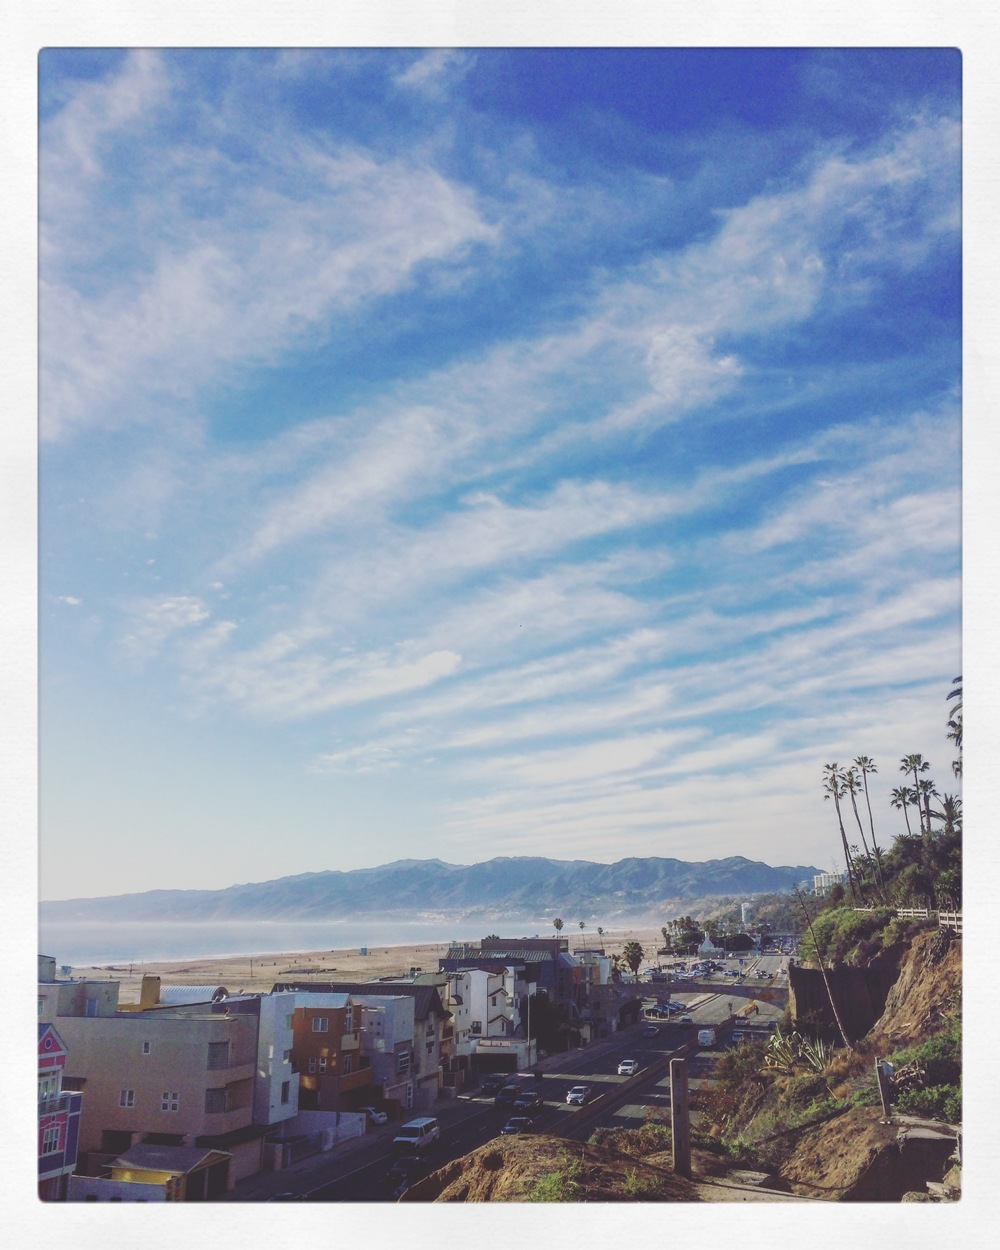 We spend our down day in LA down in Santa Monica under a perfect sky.